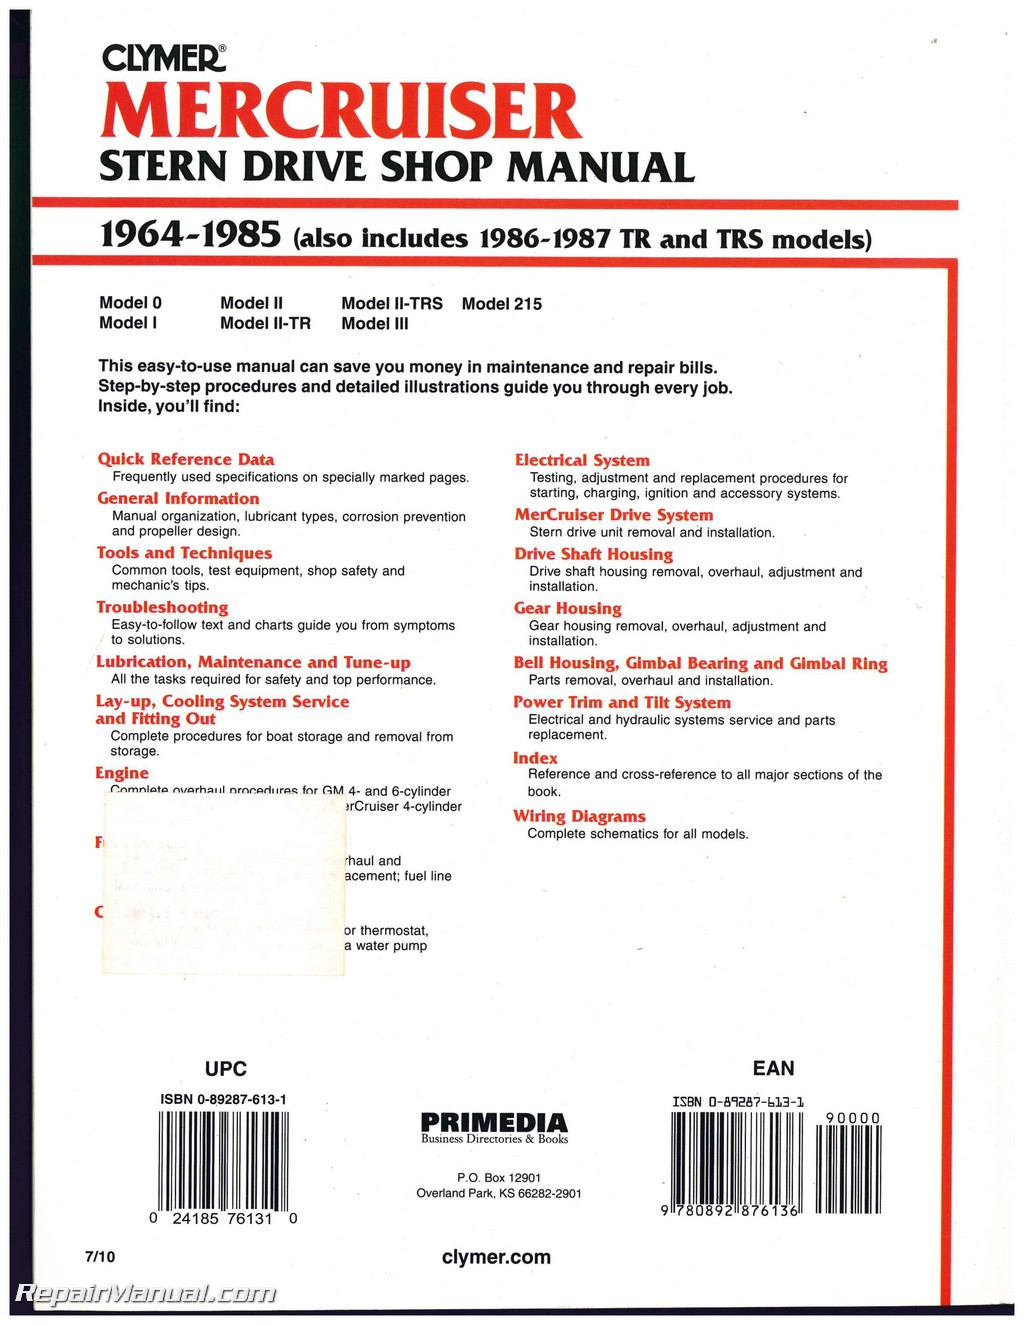 used clymer mercruiser 1964 1987 stern drive boat engine repair manual rh repairmanual com mercruiser alpha one installation manual mercruiser alpha one installation manual